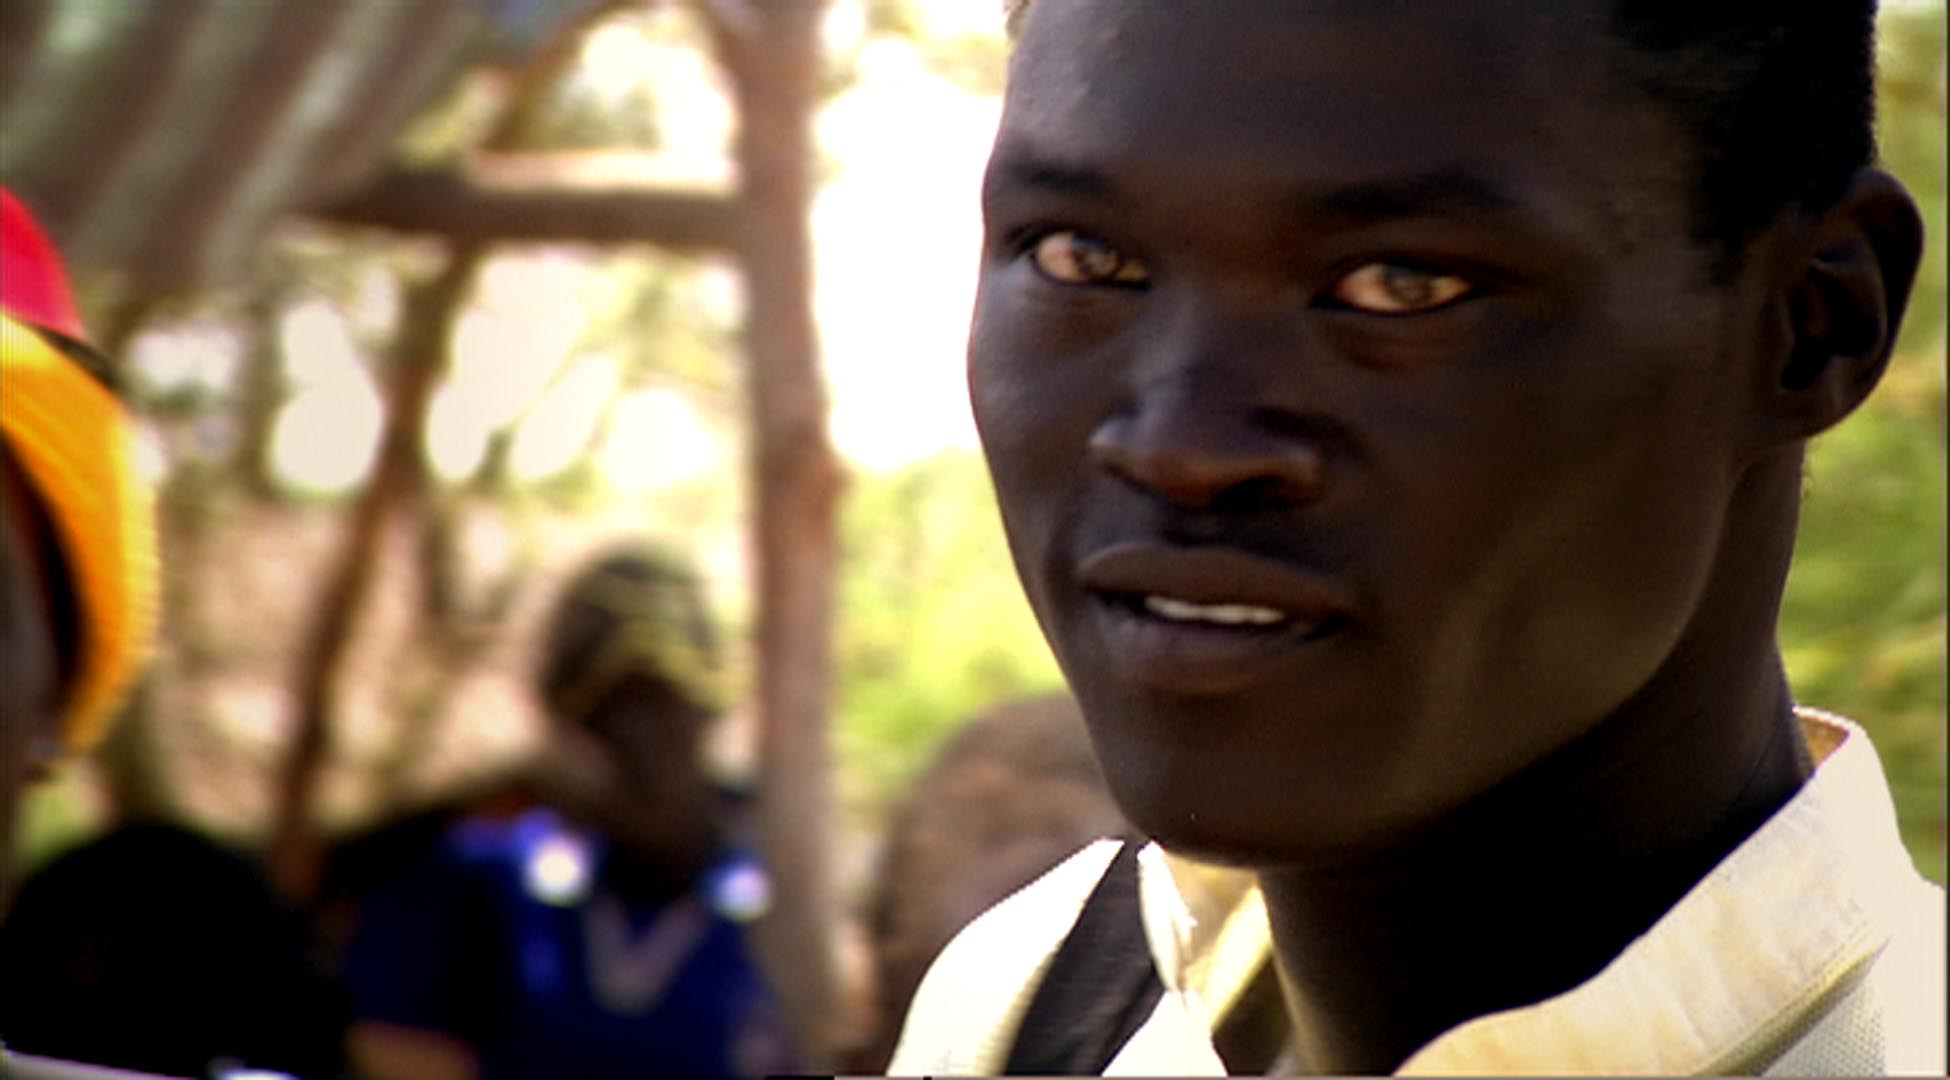 the lost boys of sudan This is 60 minutes - the lost boys of sudan by refugepoint on vimeo, the home for high quality videos and the people who love them.